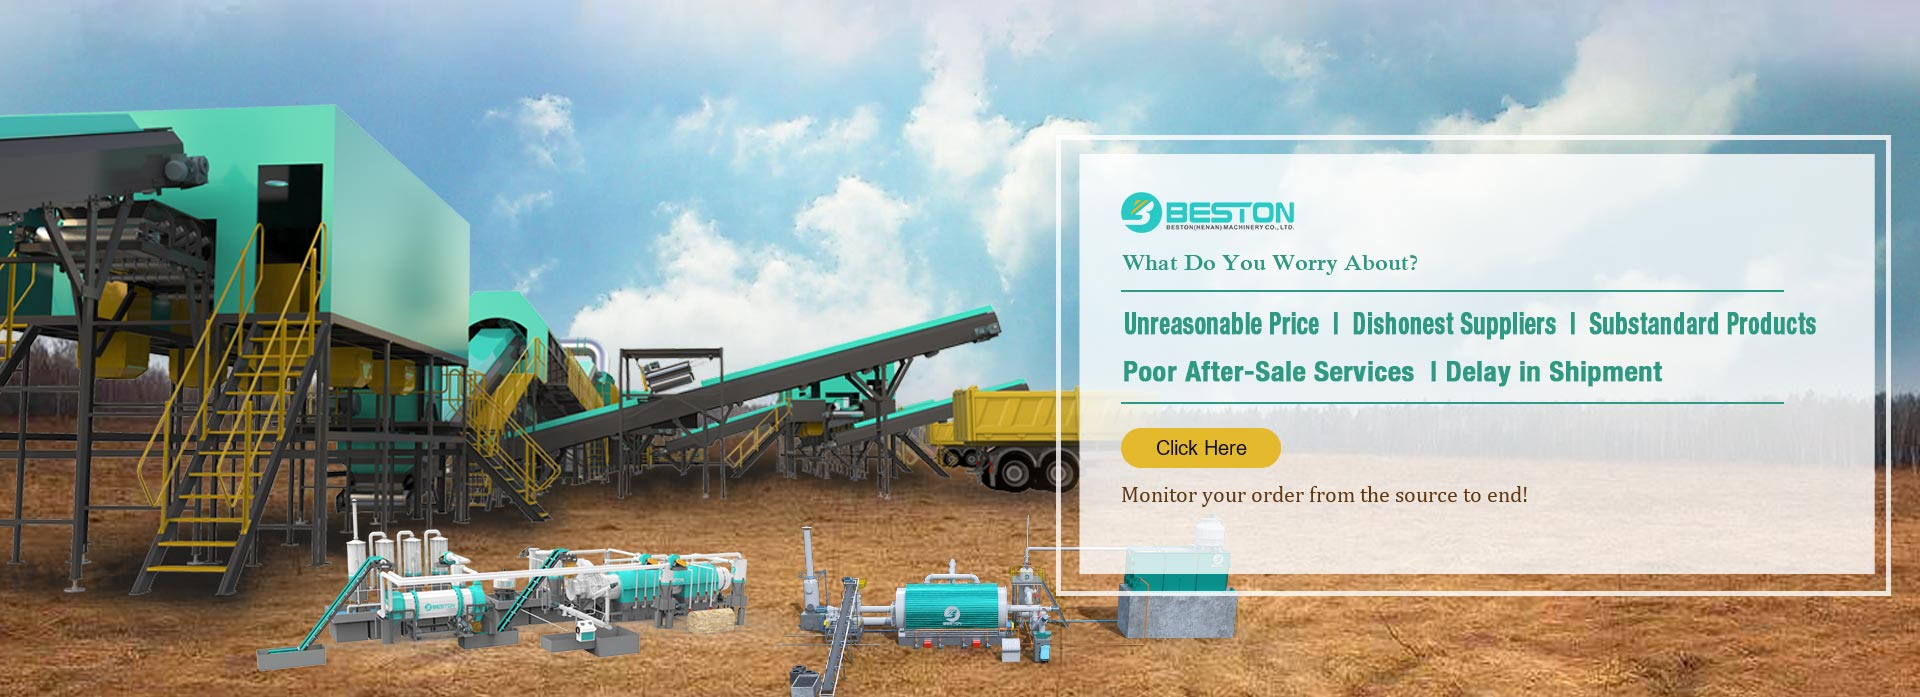 Beston Machinery mall banner